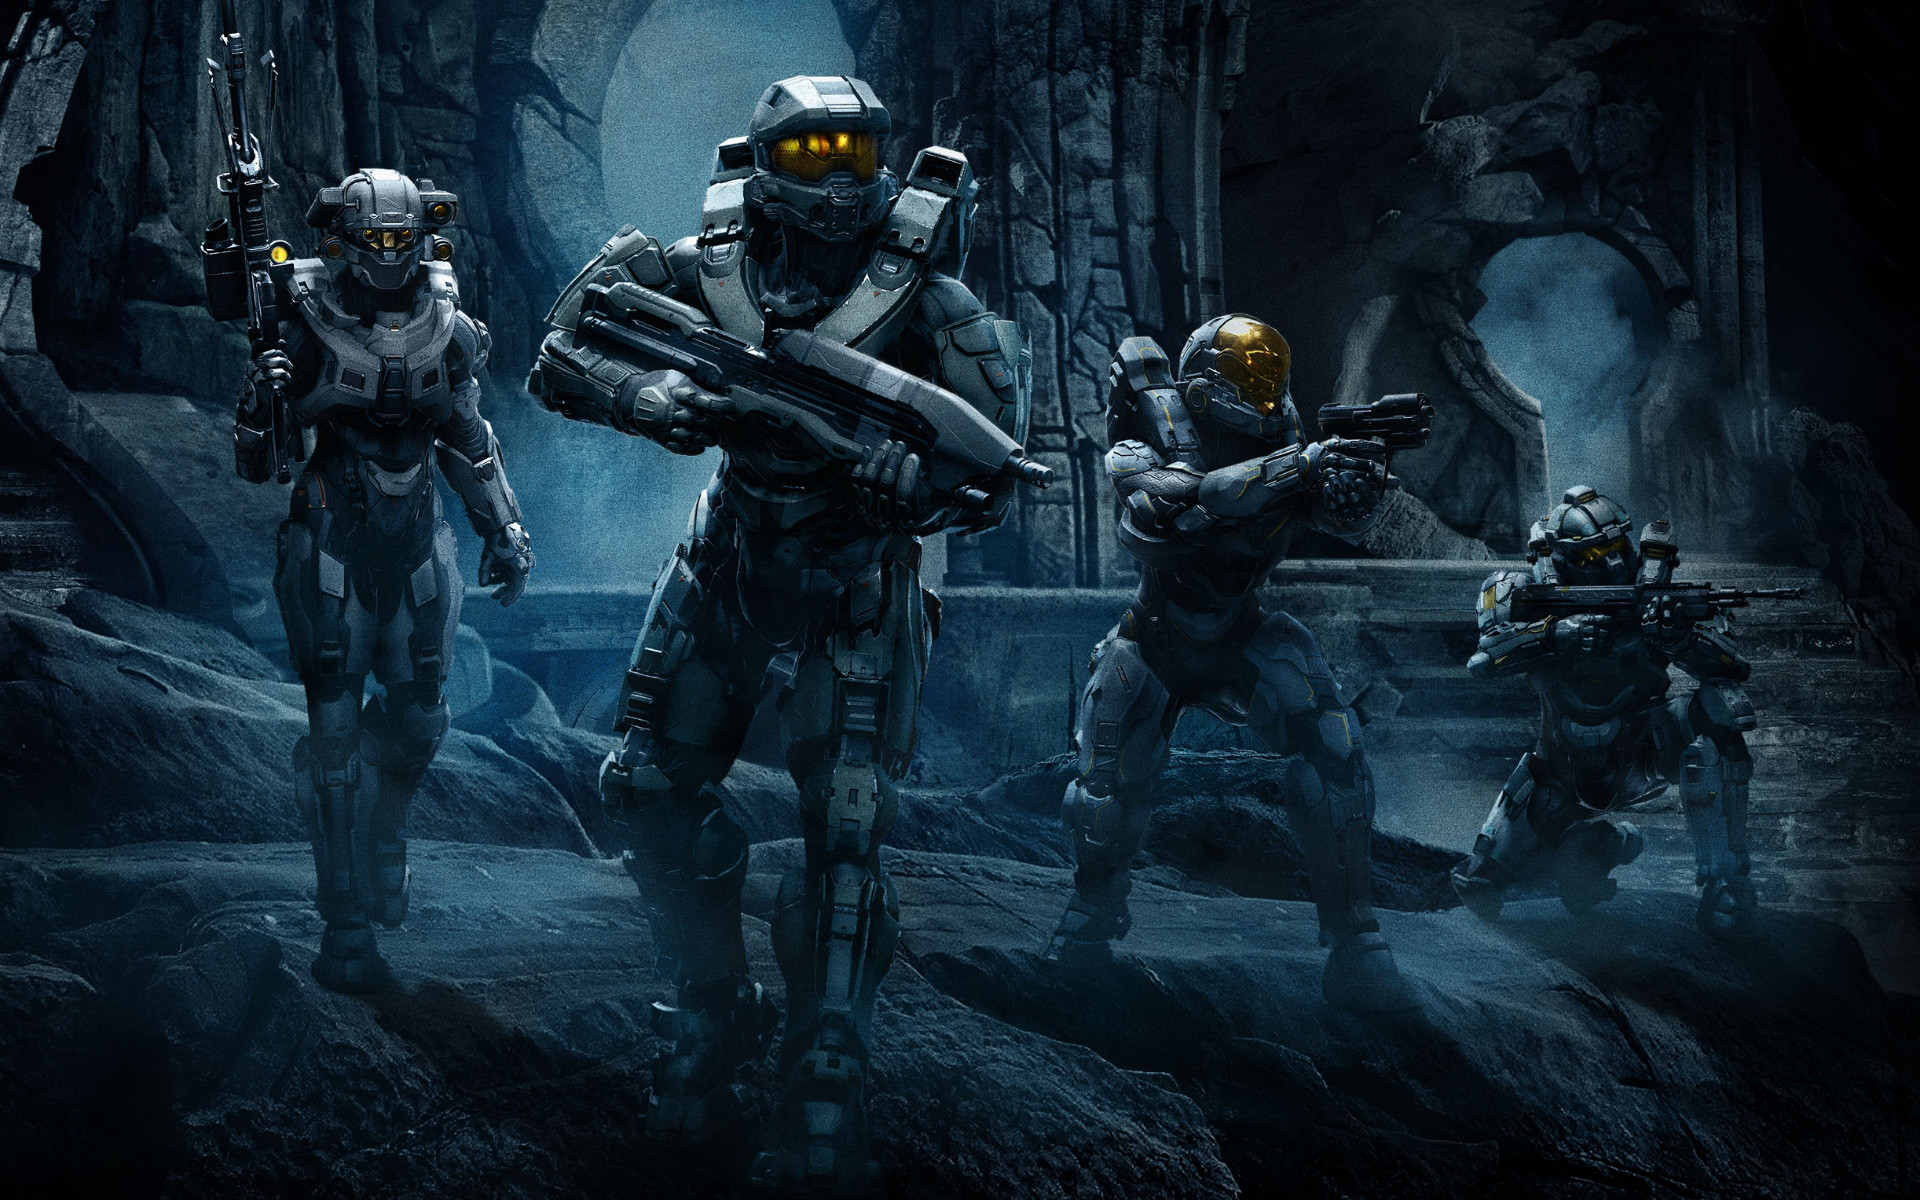 1920x1200 Good News Gaming: Halo Guardians Campaign Cinematic Introduces Blue Team